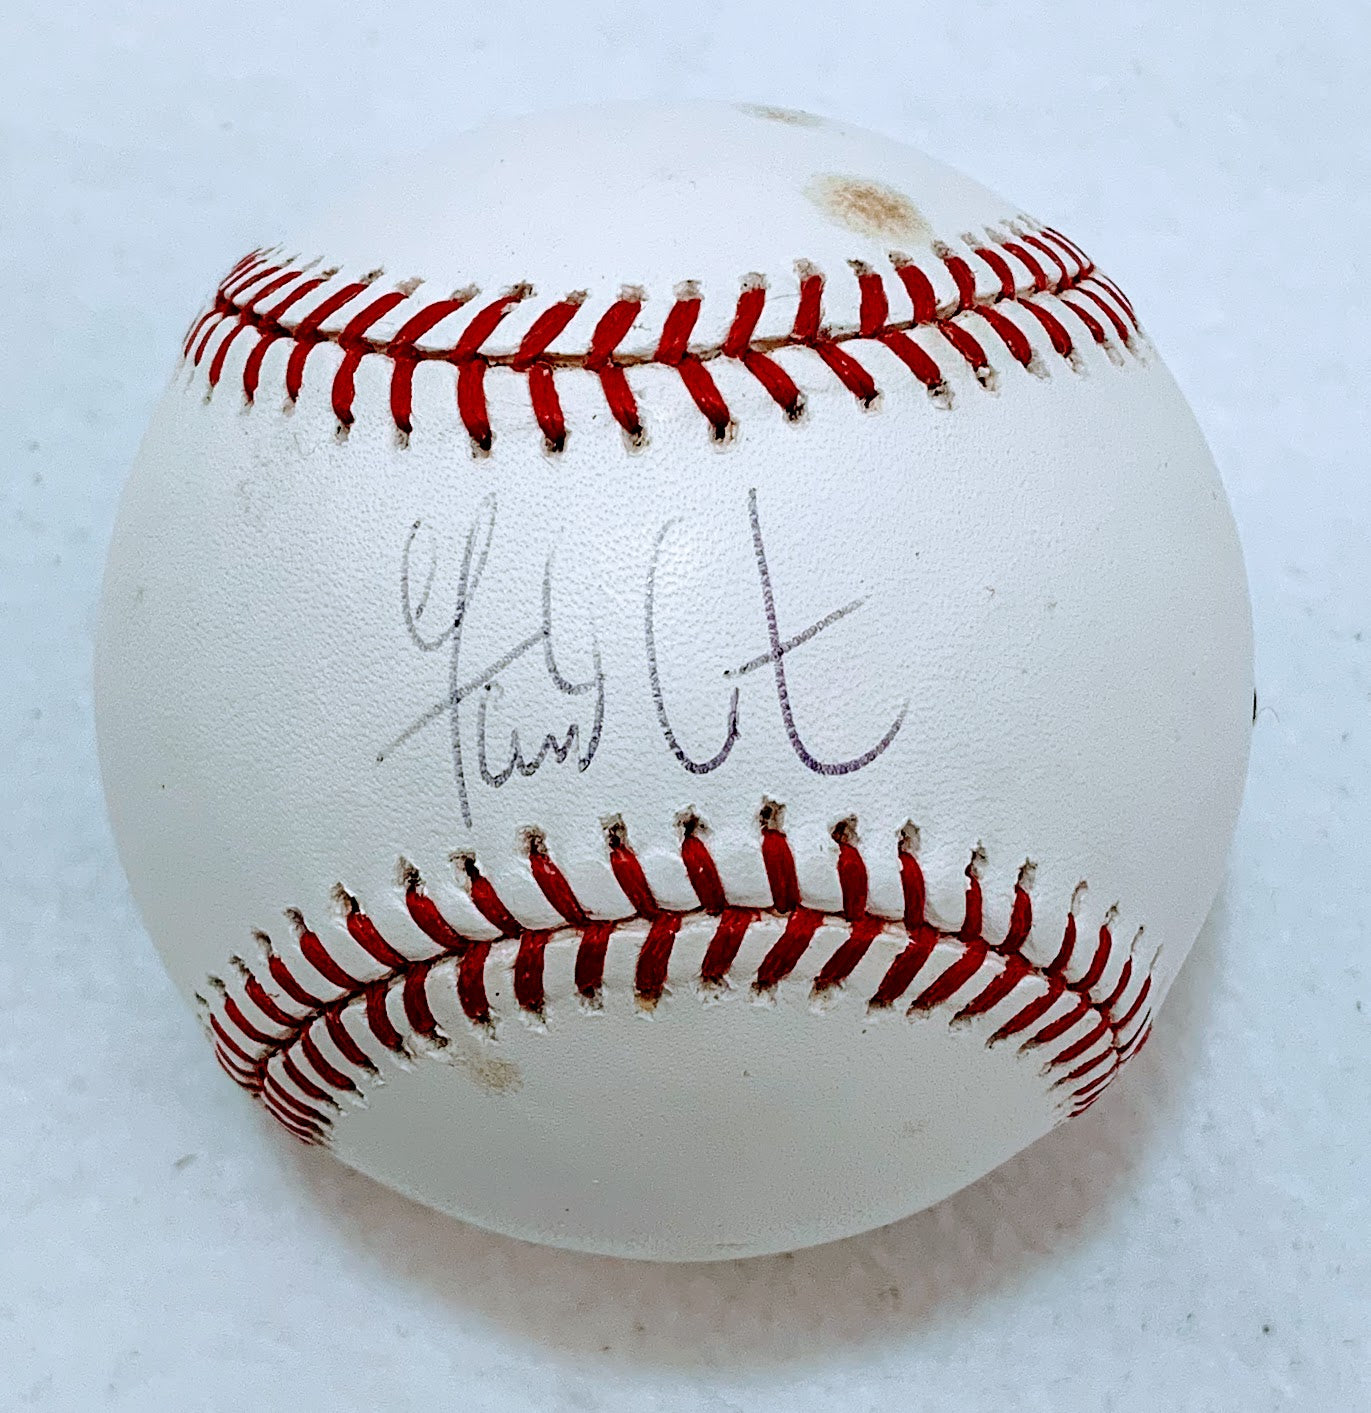 Garrett Atkins Autographed Baseball (Faded Signature and Small Blemishes) - Latitude Sports Marketing